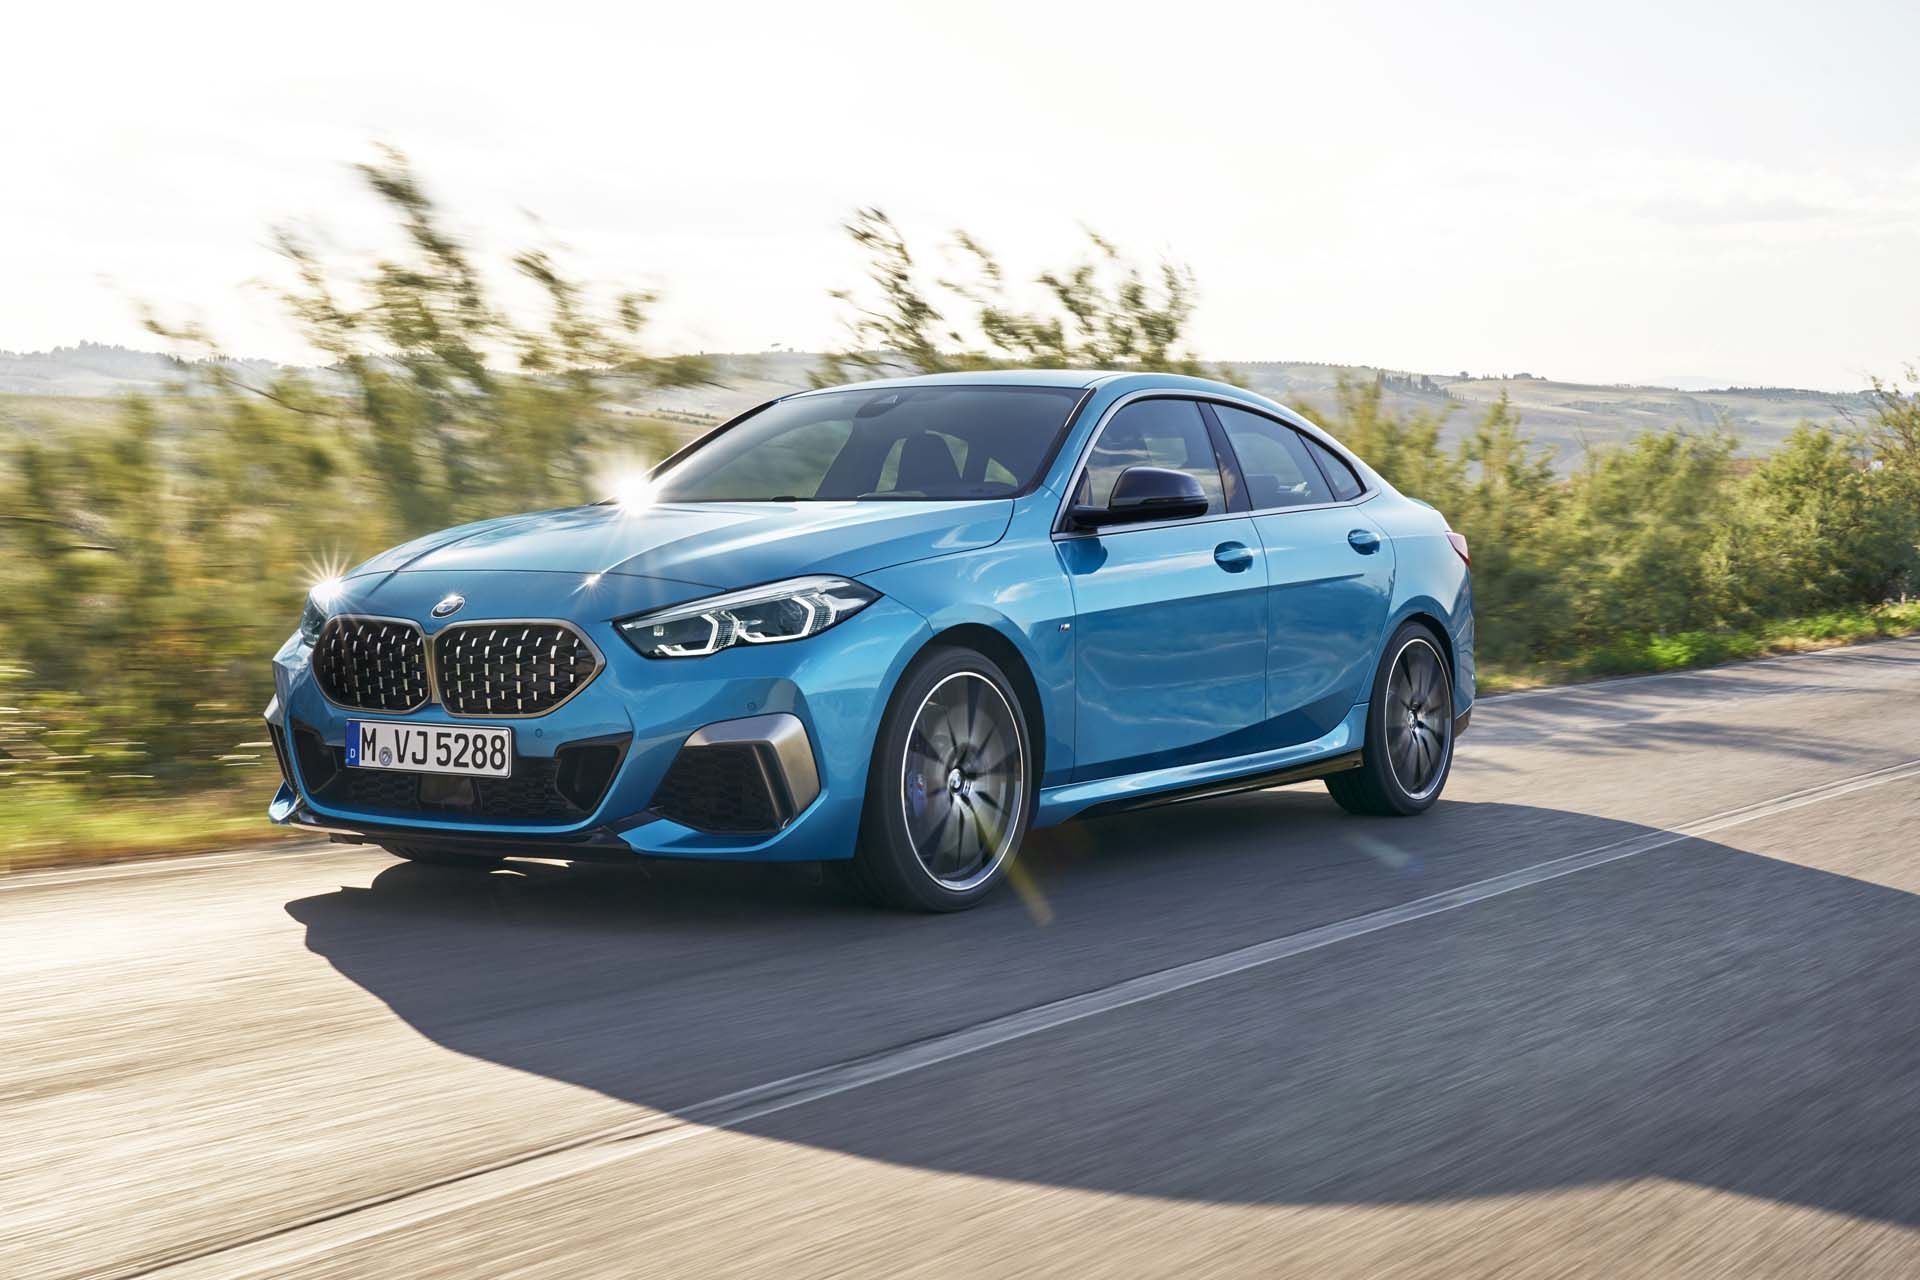 2020 Bmw Auto 2 Series Gran Coupe Costs About The Same As The Two Door Is Still Not A Coupe Bmw New Bmw Gran Coupe